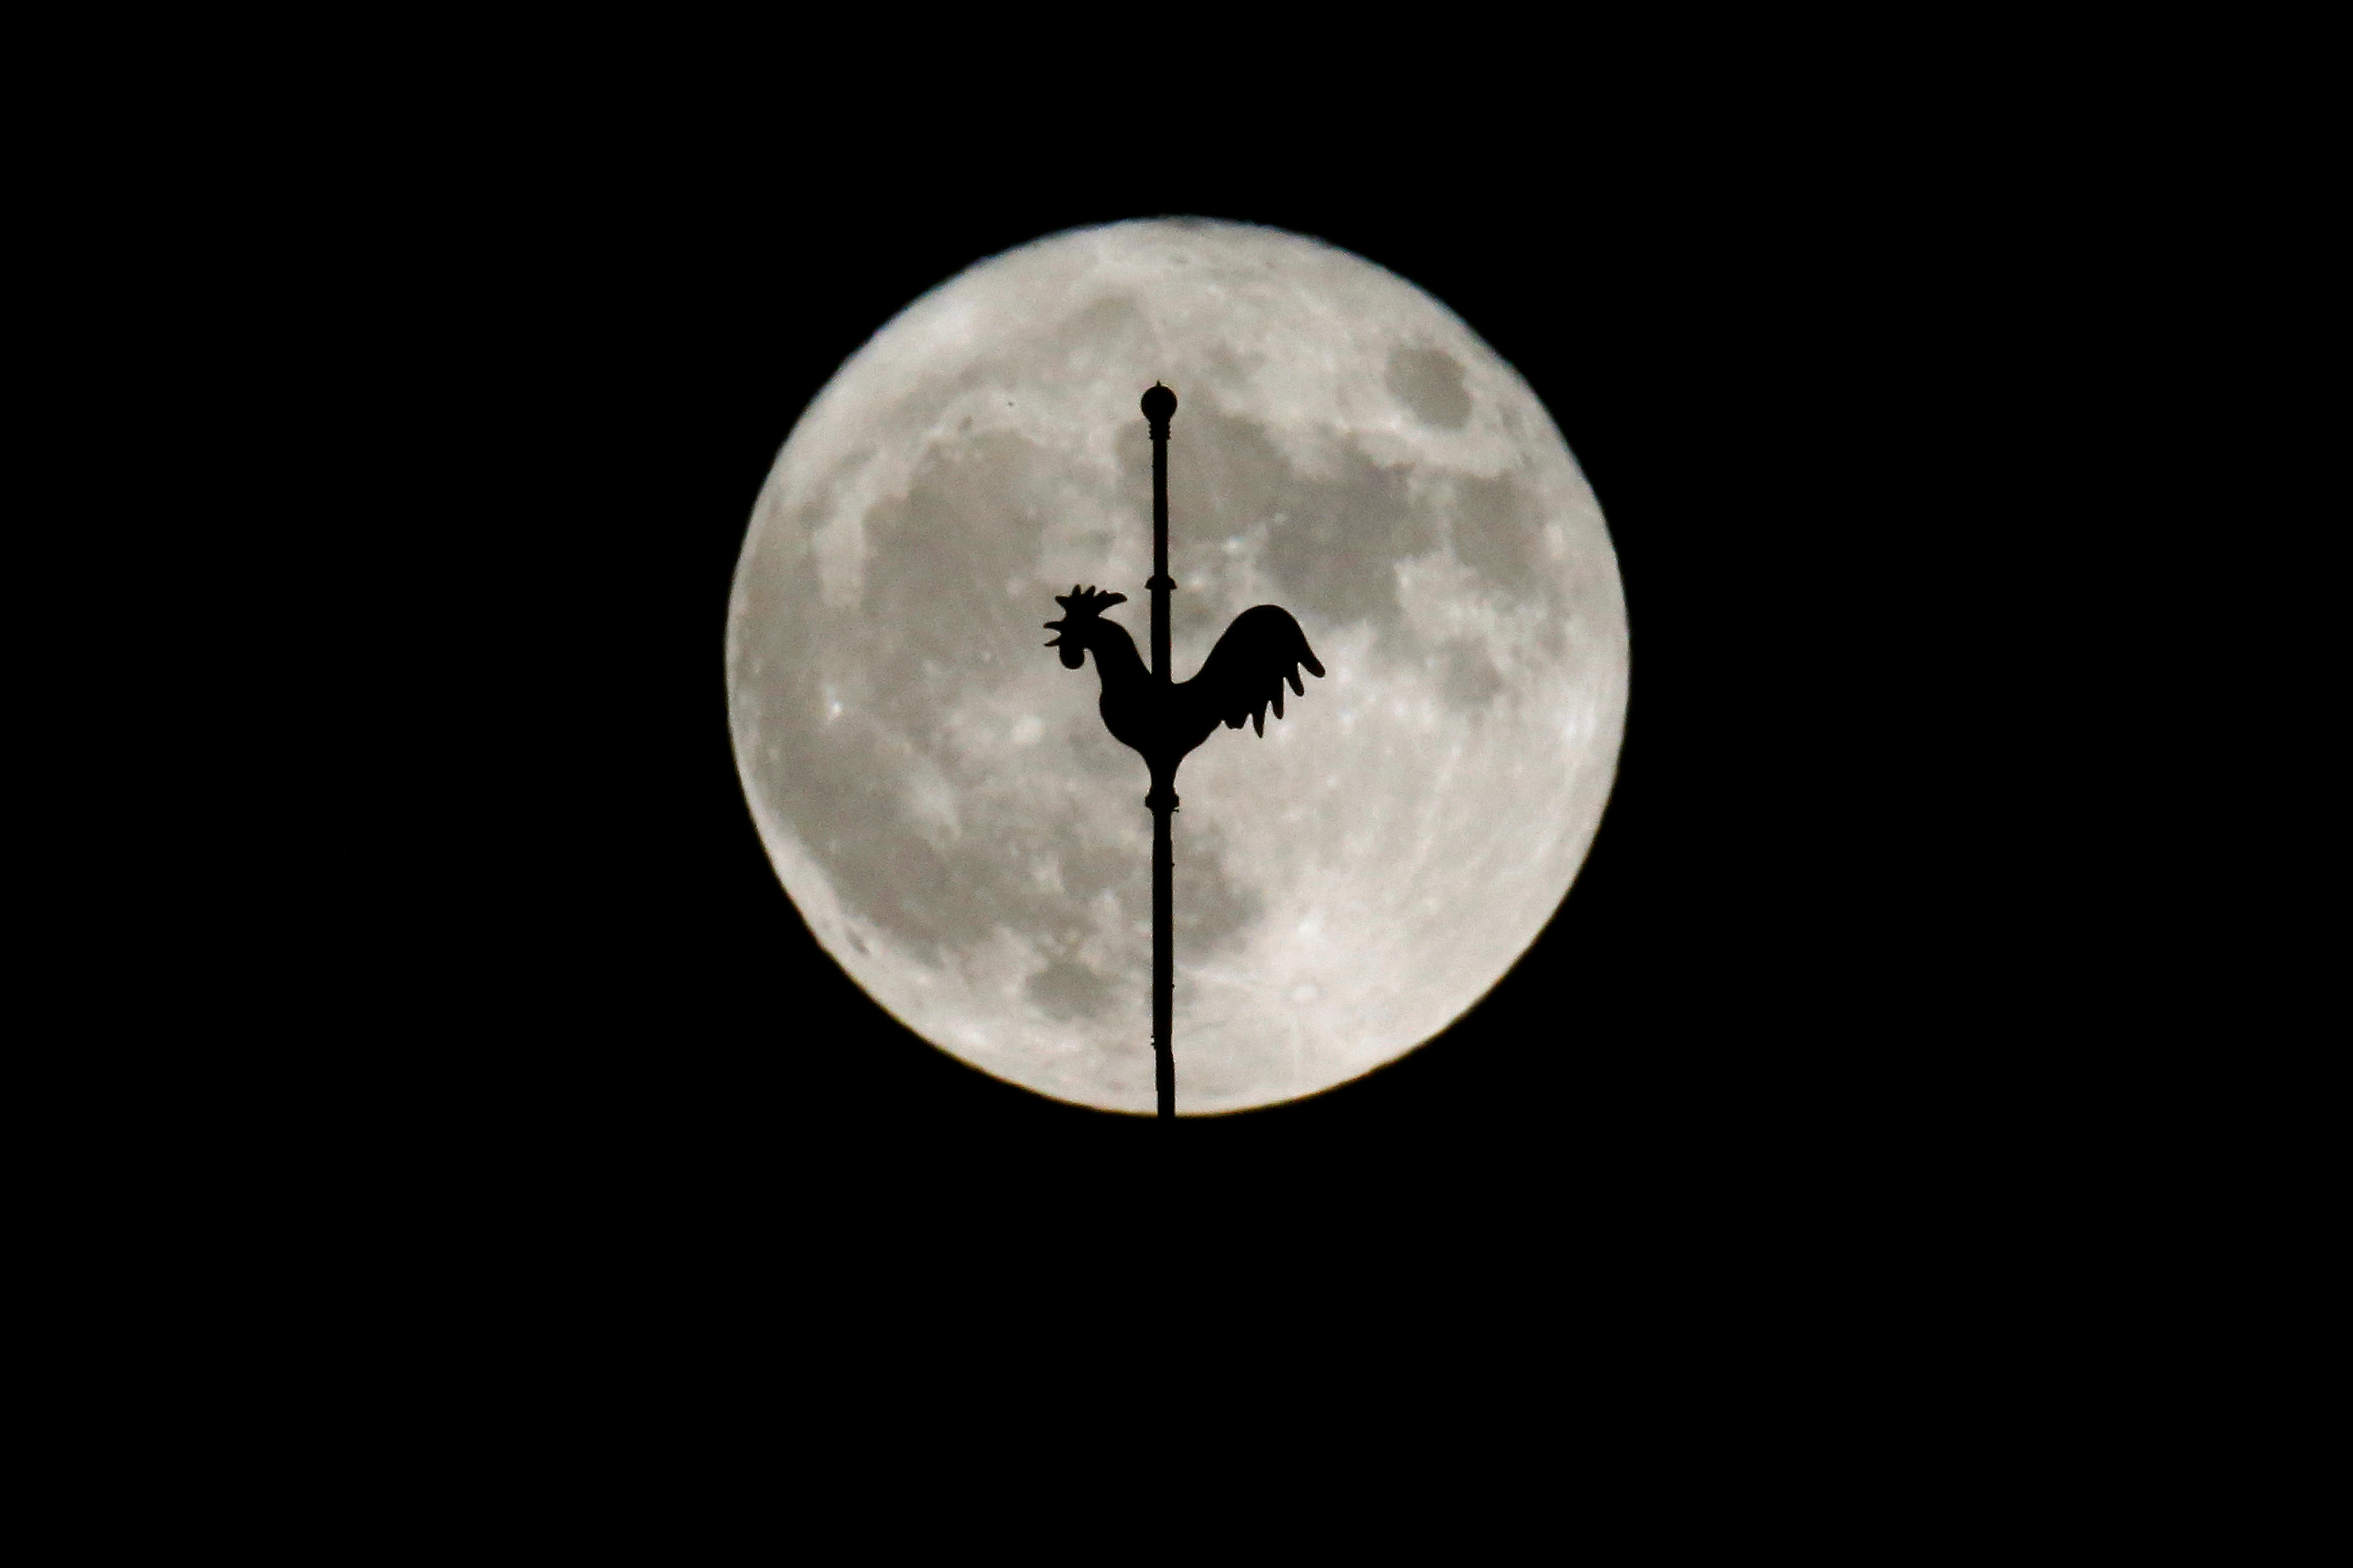 The rising supermoon is seen behind the weathercock of the church of Saint-Hilaire in the village of Saint-Fiacre-sur-Maine near Nantes, western France November 14, 2016.